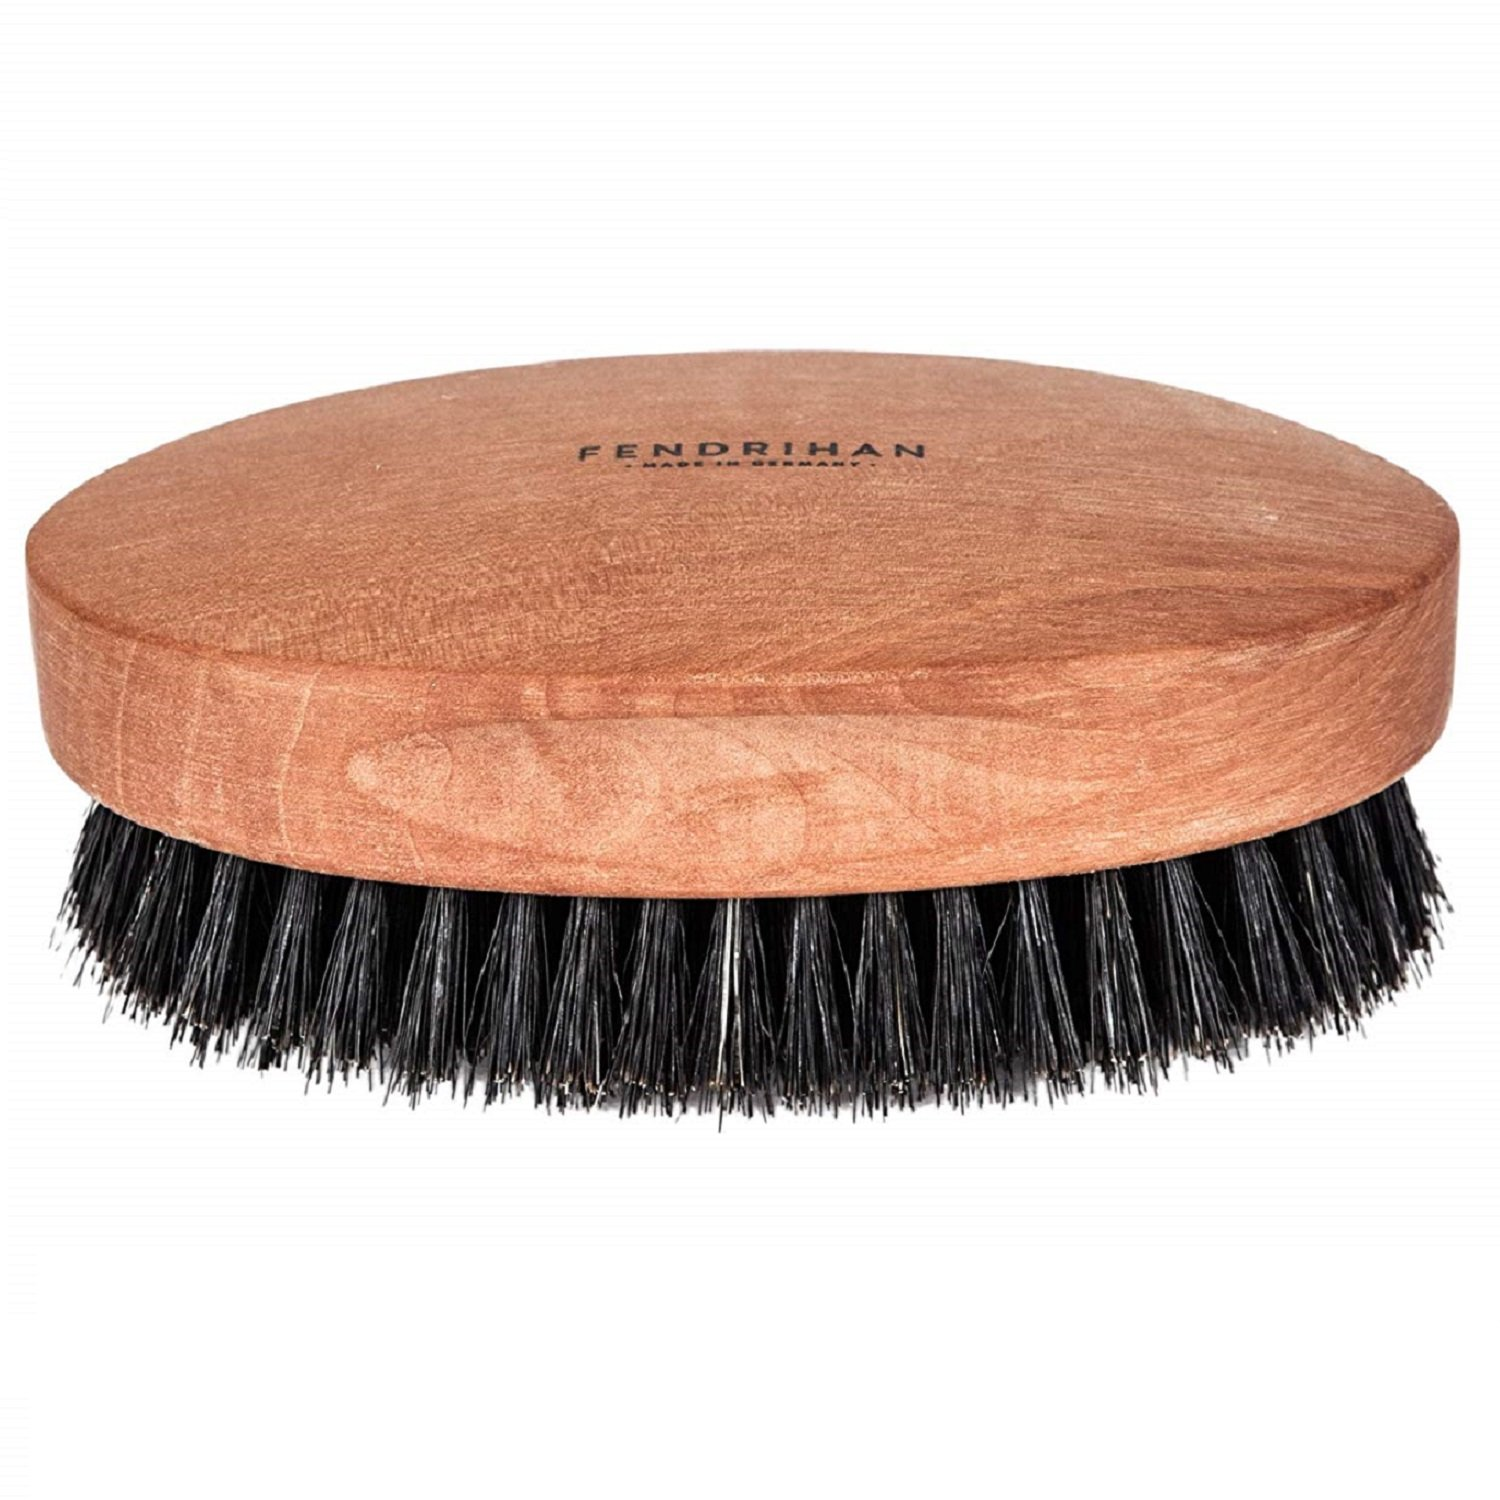 Fendrihan Genuine Boar Bristle and Pear Wood Military Hair Brush, Made in Germany SOFT BRISTLE